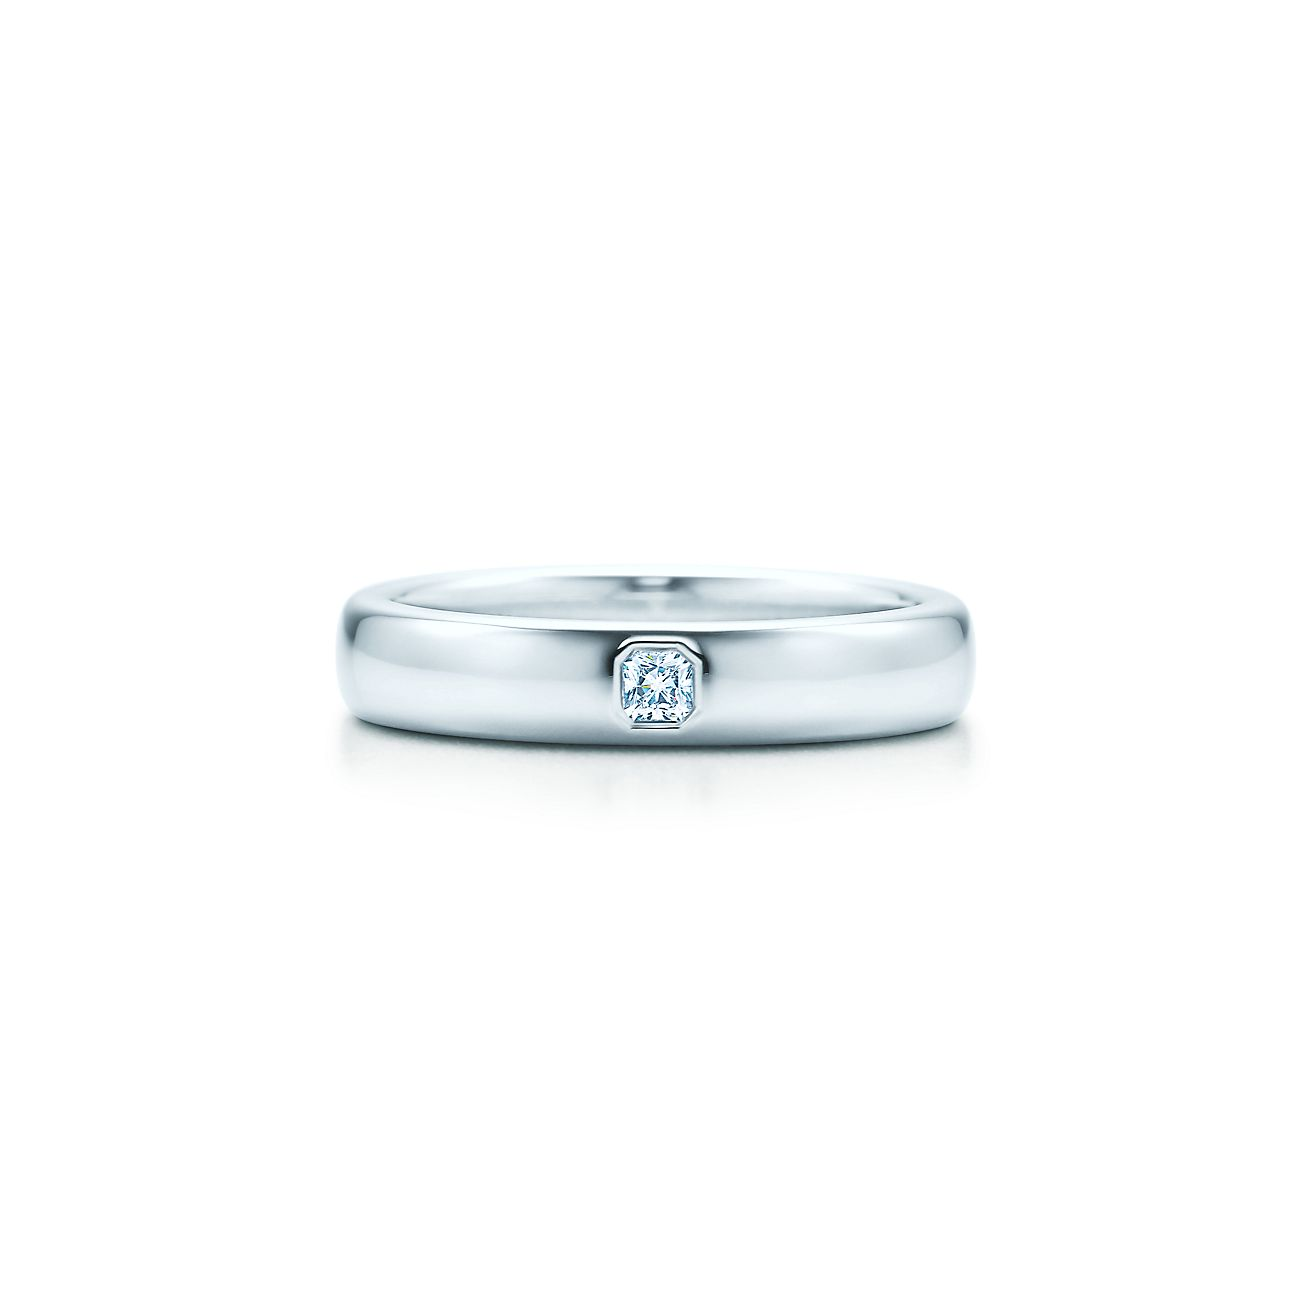 lucida band ring with a diamond in platinum 4mm wide